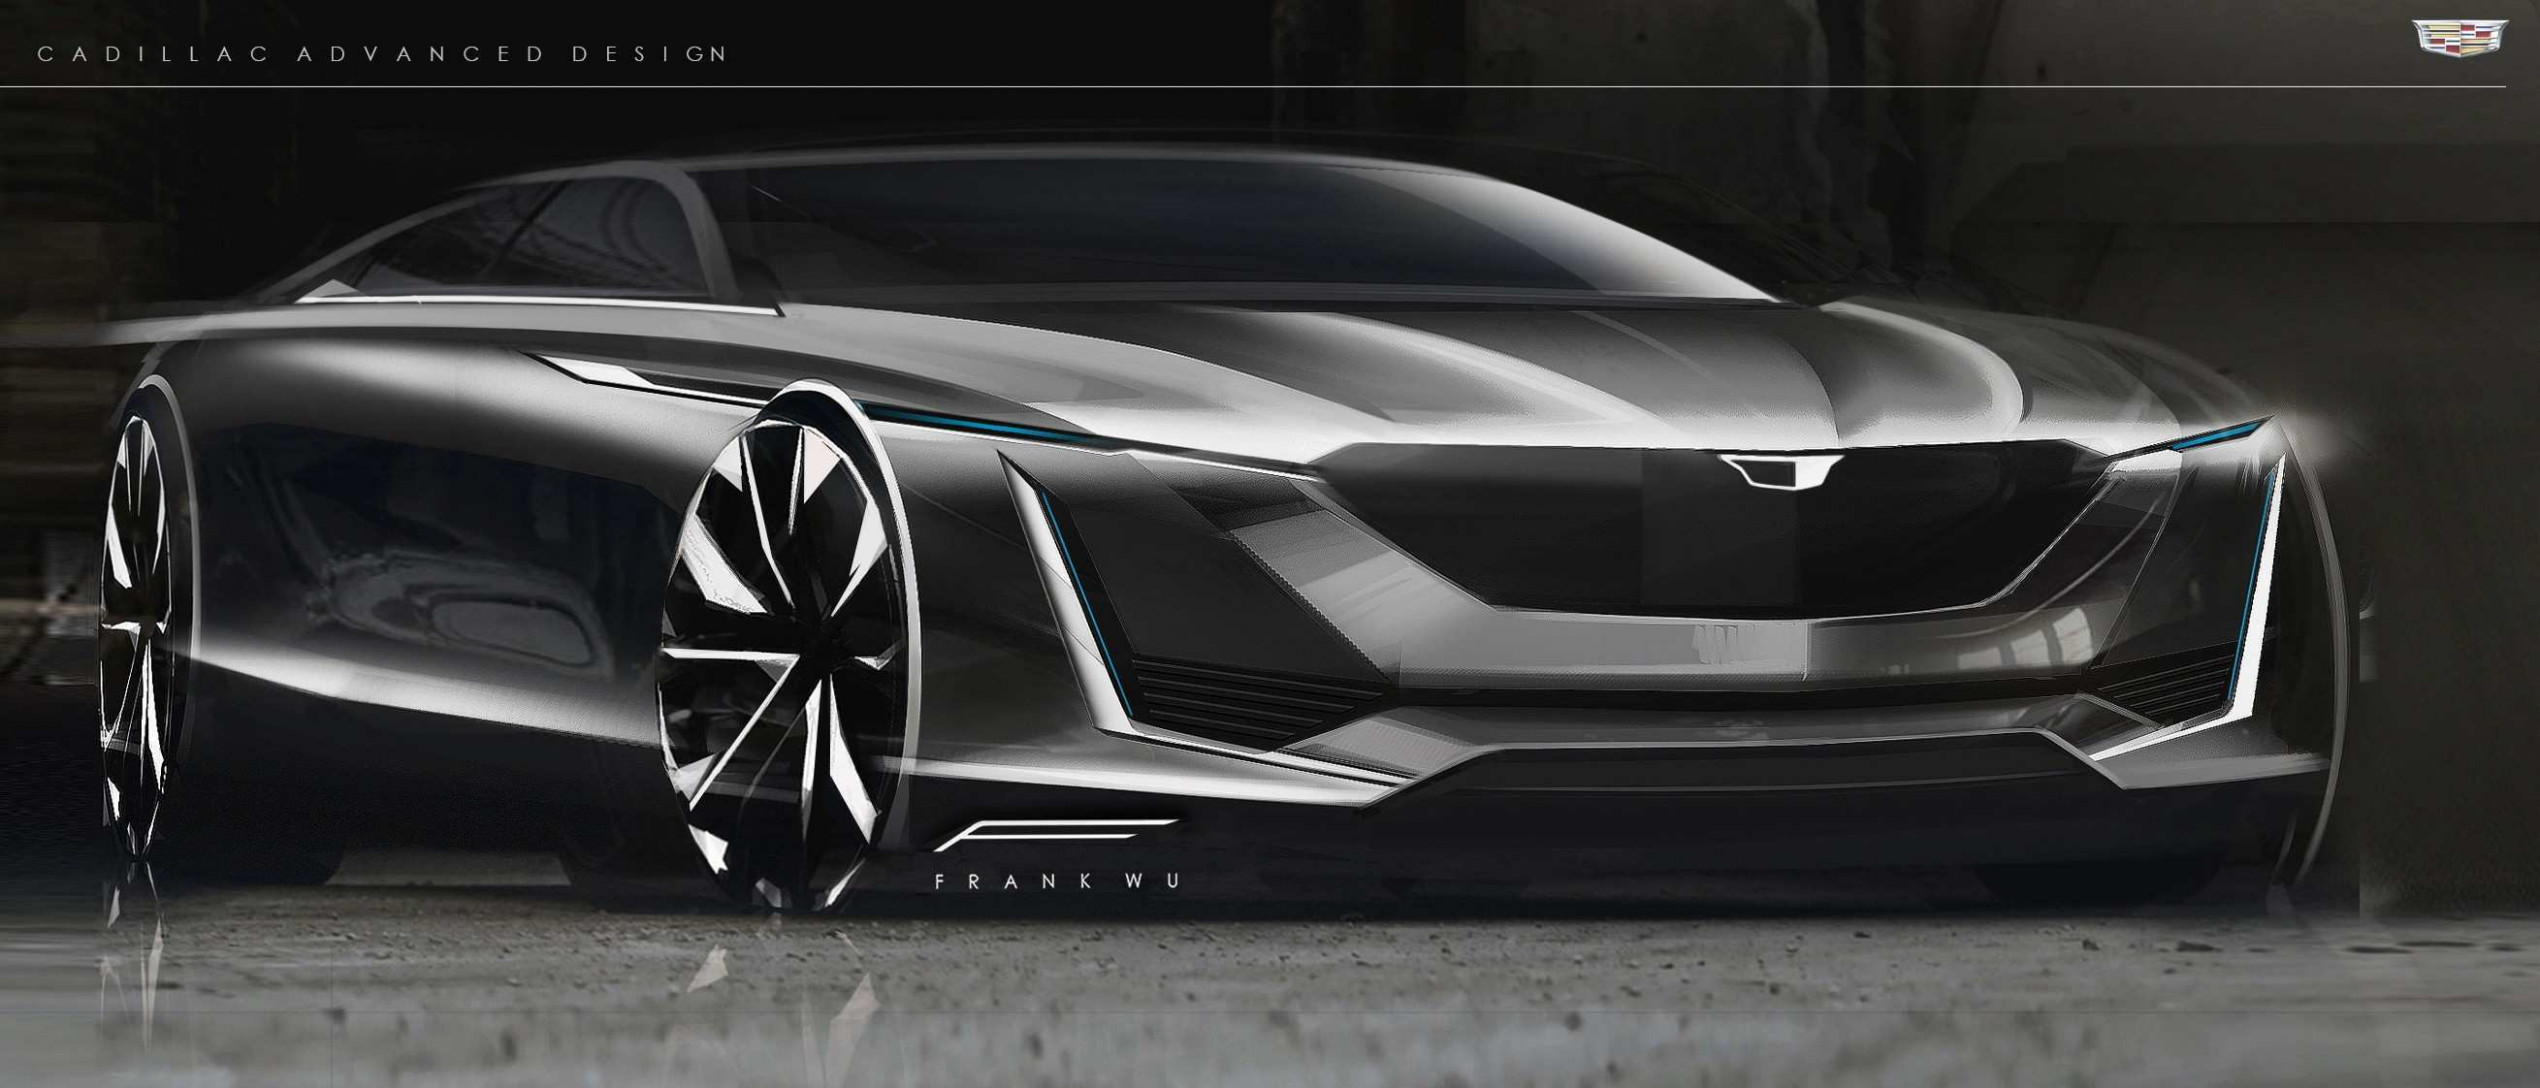 9 Concept of 9 Cadillac Sports Car Concept with 9 Cadillac ..